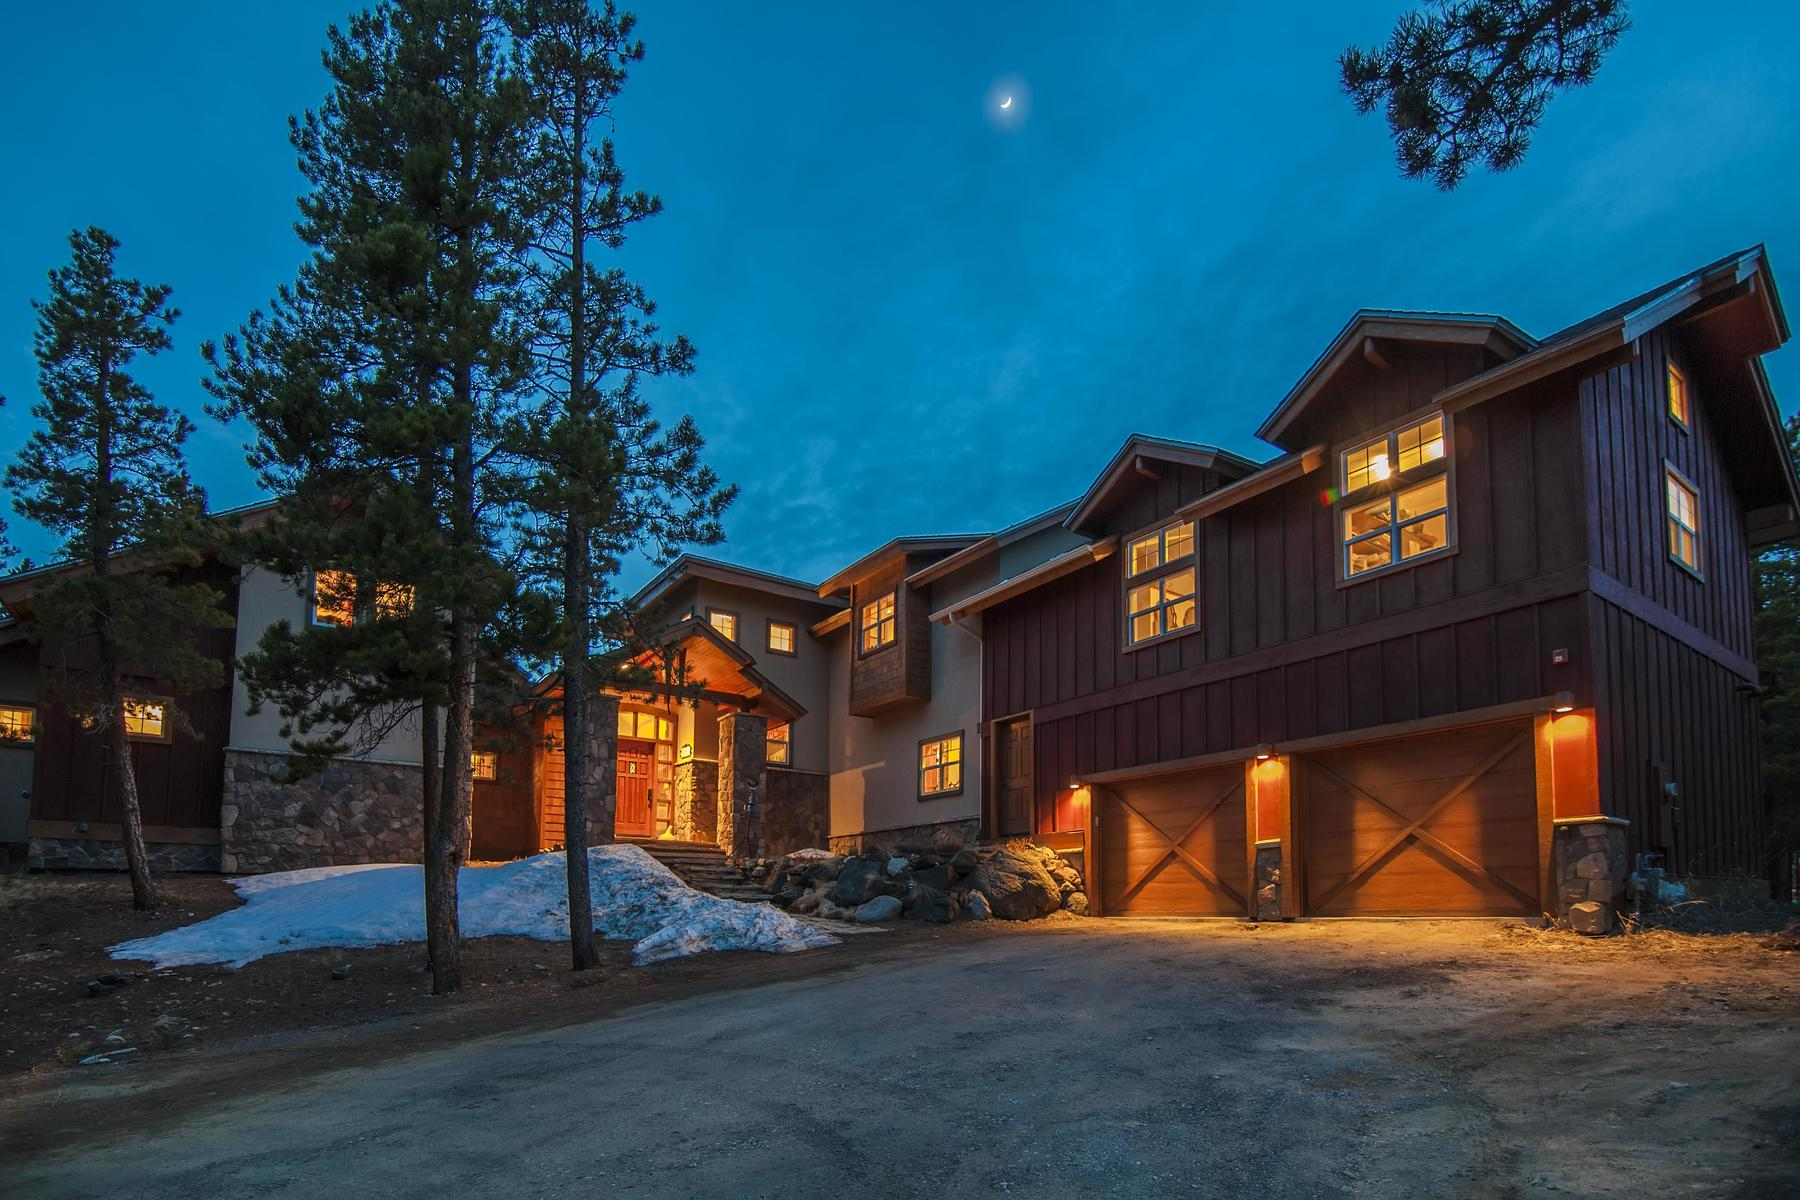 Single Family Homes for Sale at Sun-filled Dream Home in Desirable Mountain Community 255 Indian Peaks Drive, Nederland, Colorado 80466 United States